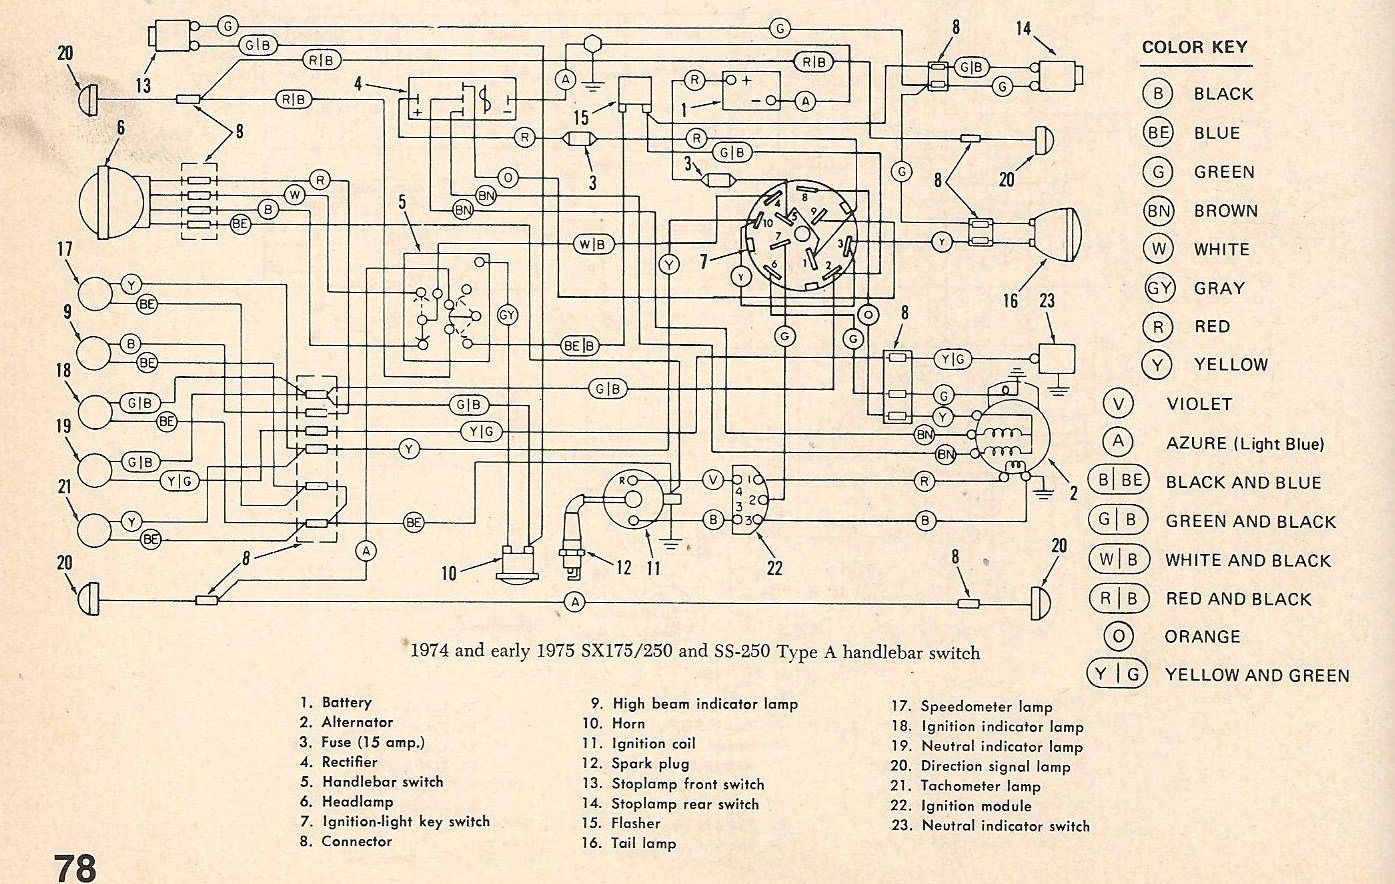 Harley Davidson Snowmobile Wiring Diagram Control Comfortable Dyna Glide Diagrams Ideas